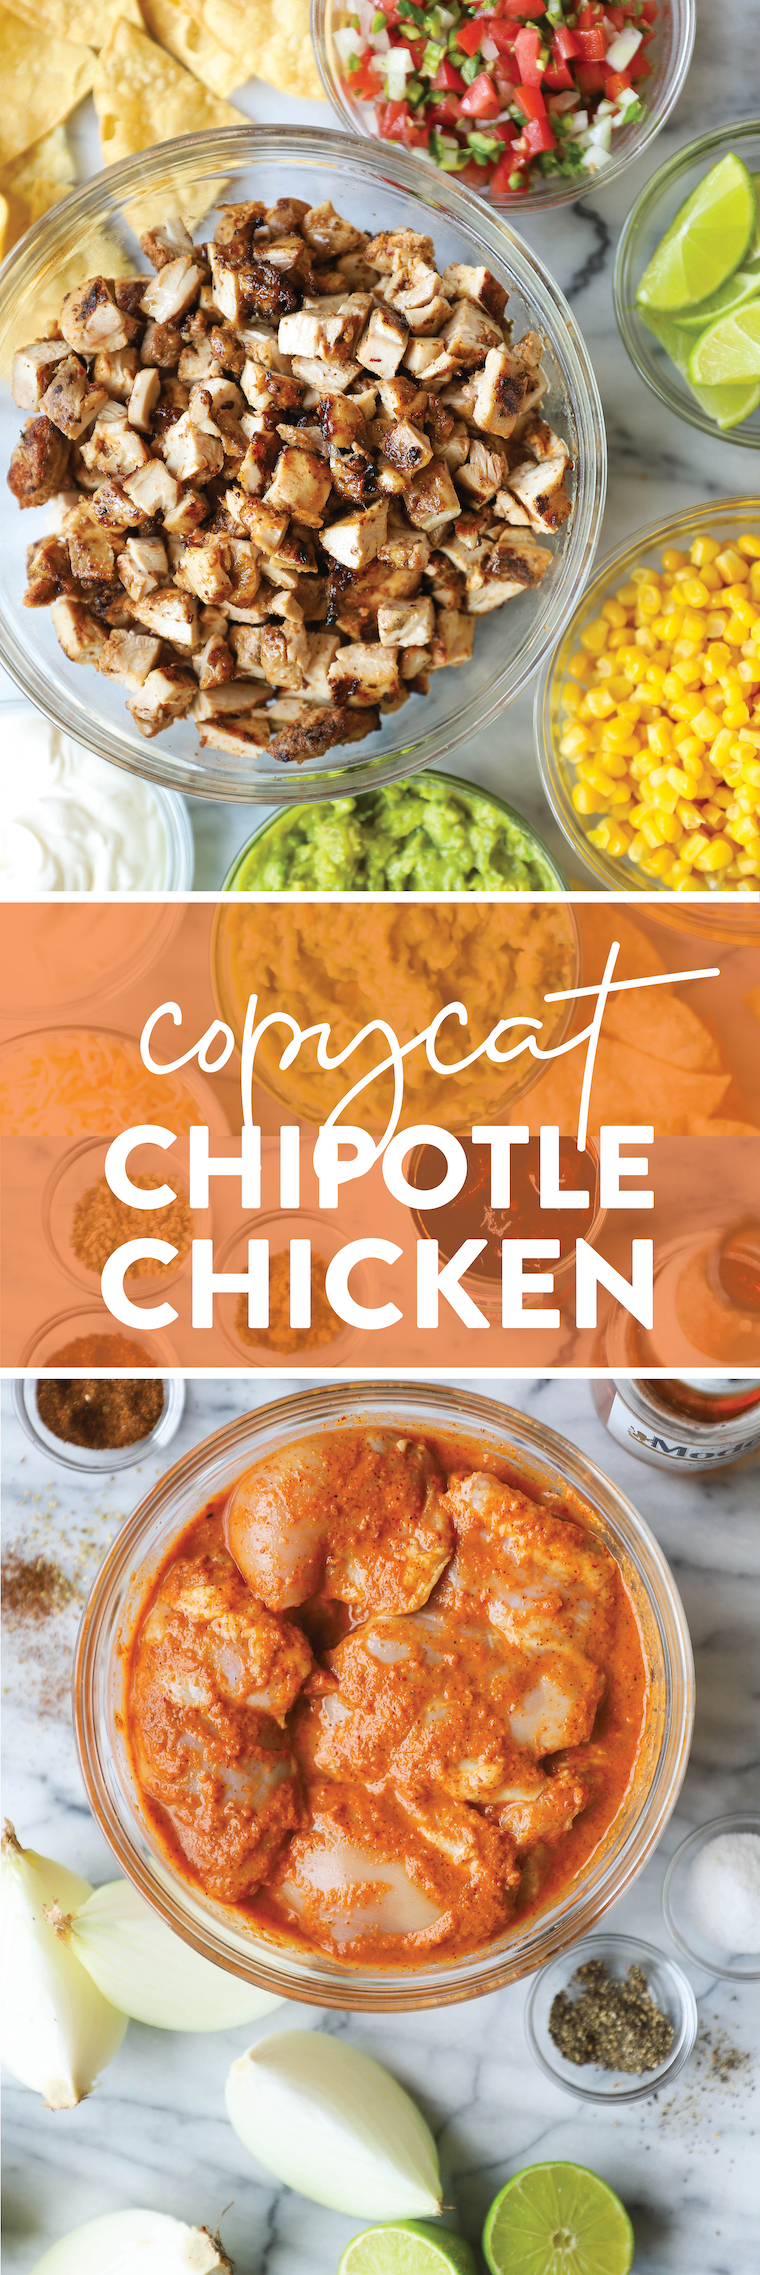 Copycat Chipotle Chicken - Seriously SO SO GOOD. Perfect for burritos and/or burrito bowls! And it's even better than Chipotle, but shhhhh!